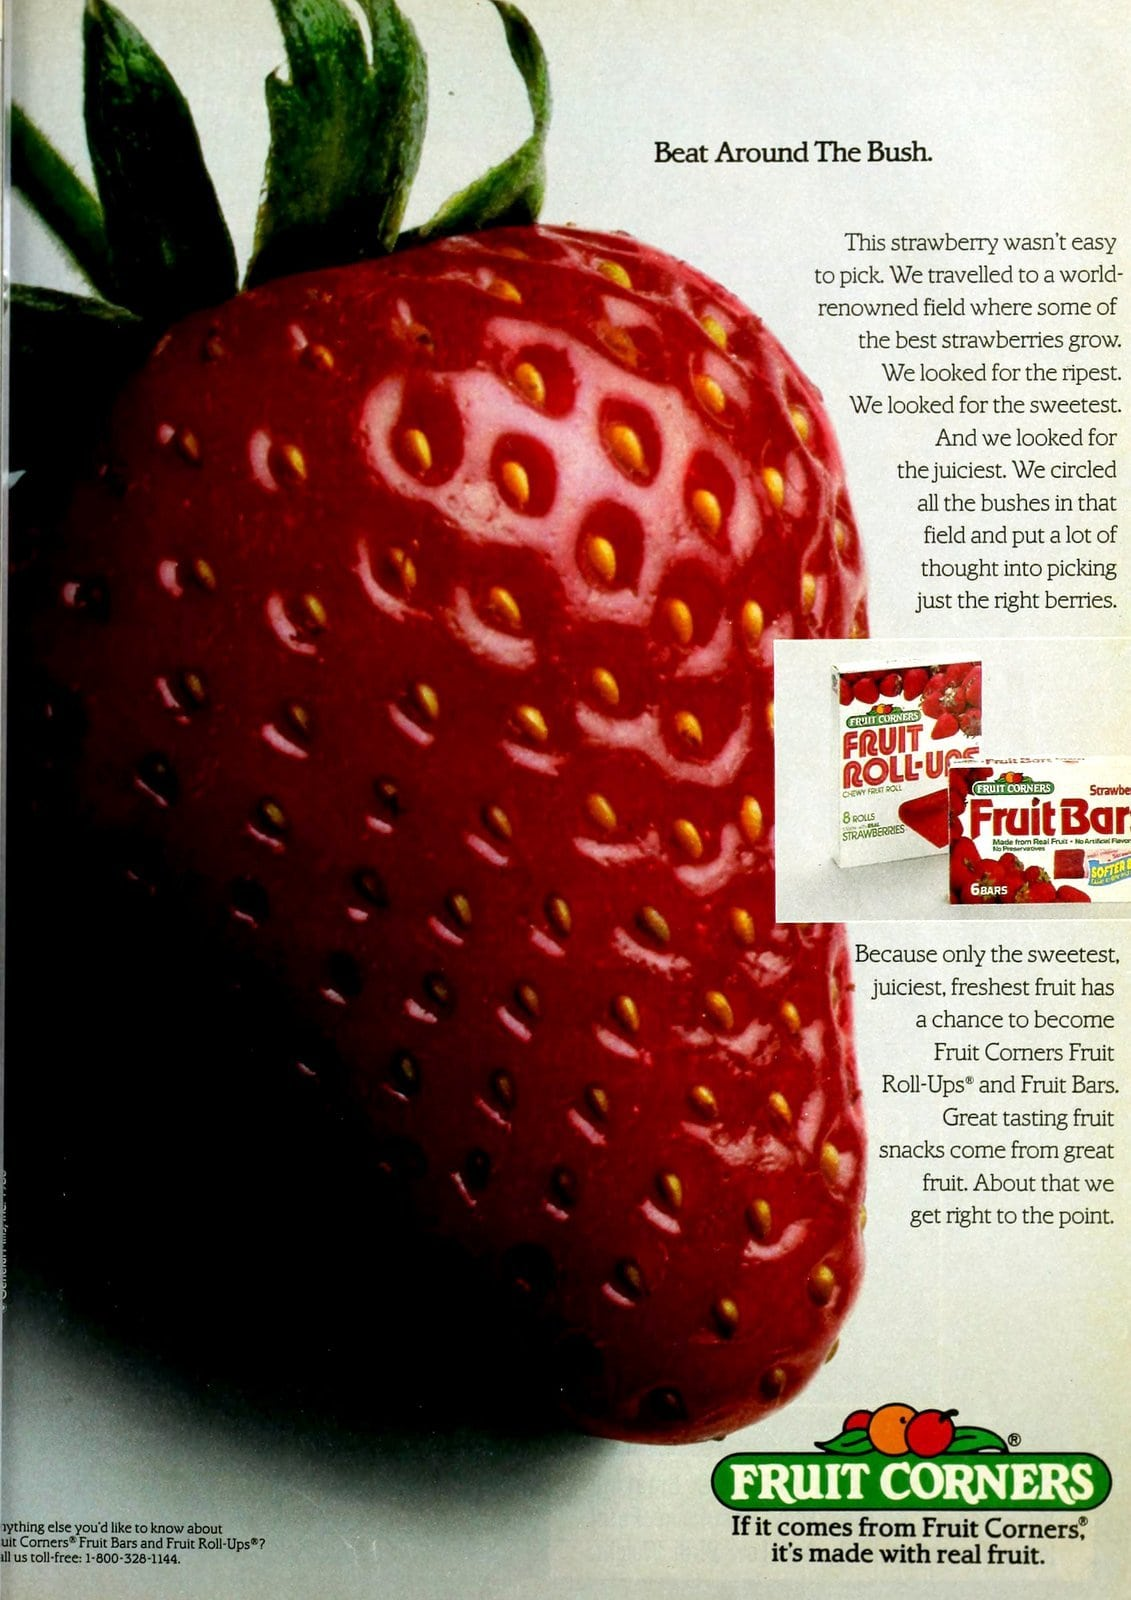 Fruit Roll-Ups and Fruit Bars - strawberry (1986)